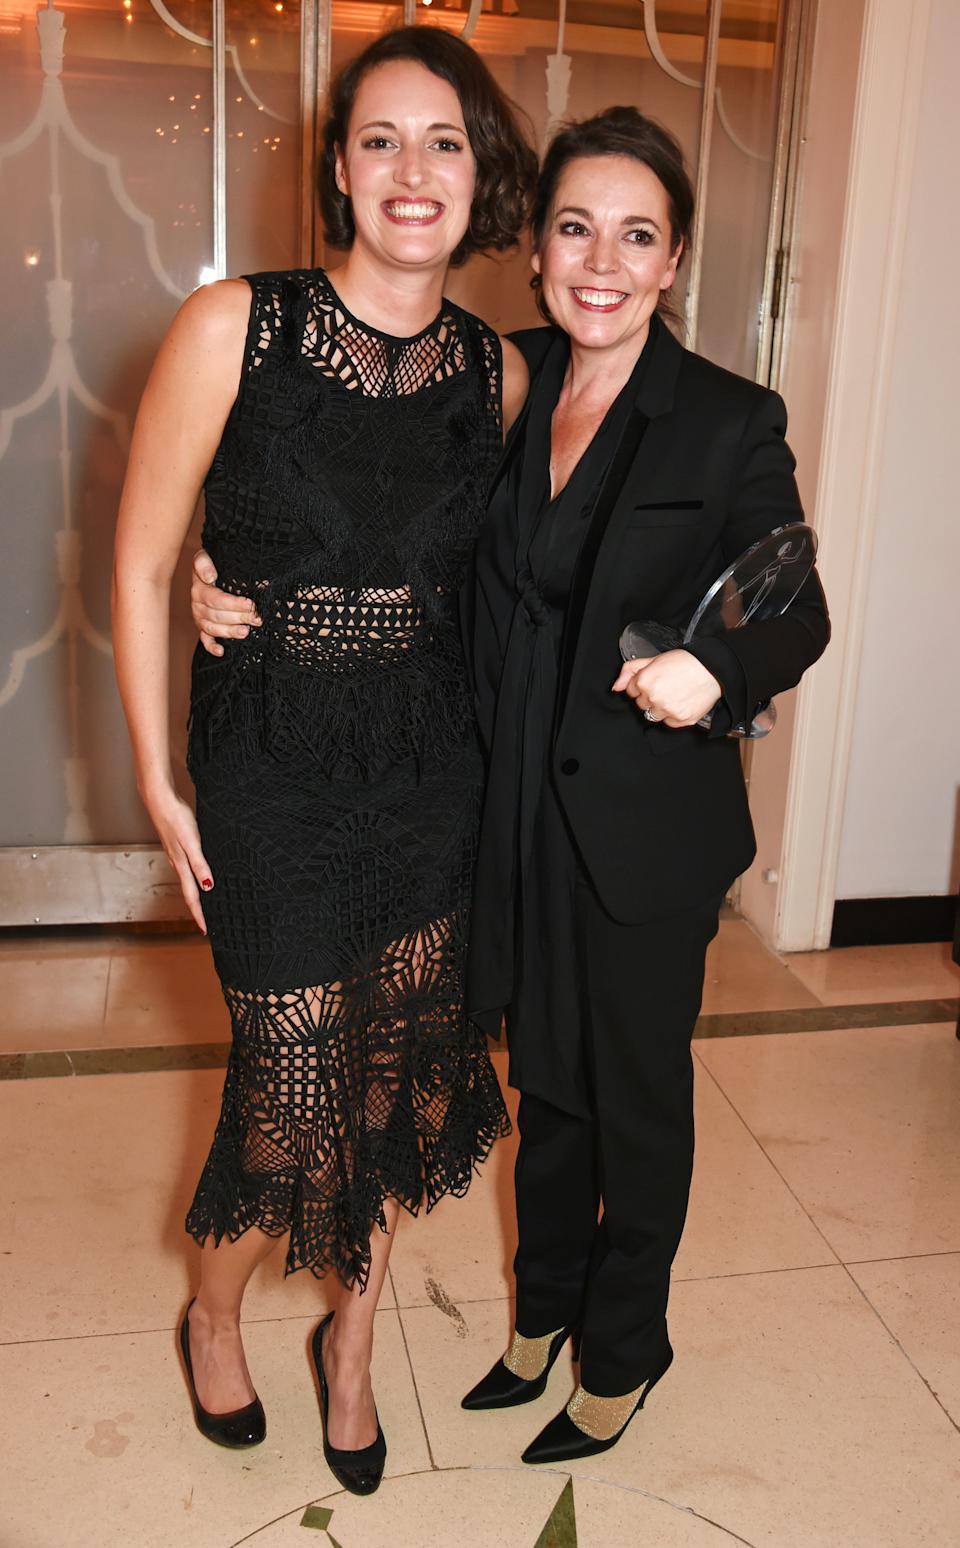 LONDON, ENGLAND - OCTOBER 31:  Presenter Phoebe Waller-Bridge (L) and Outstanding Performance award winner Olivia Colman attends the Harper's Bazaar Women of the Year Awards 2016 at Claridge's Hotel on October 31, 2016 in London, England.  (Photo by David M. Benett/Dave Benett/Getty Images for Harper's Bazaar)